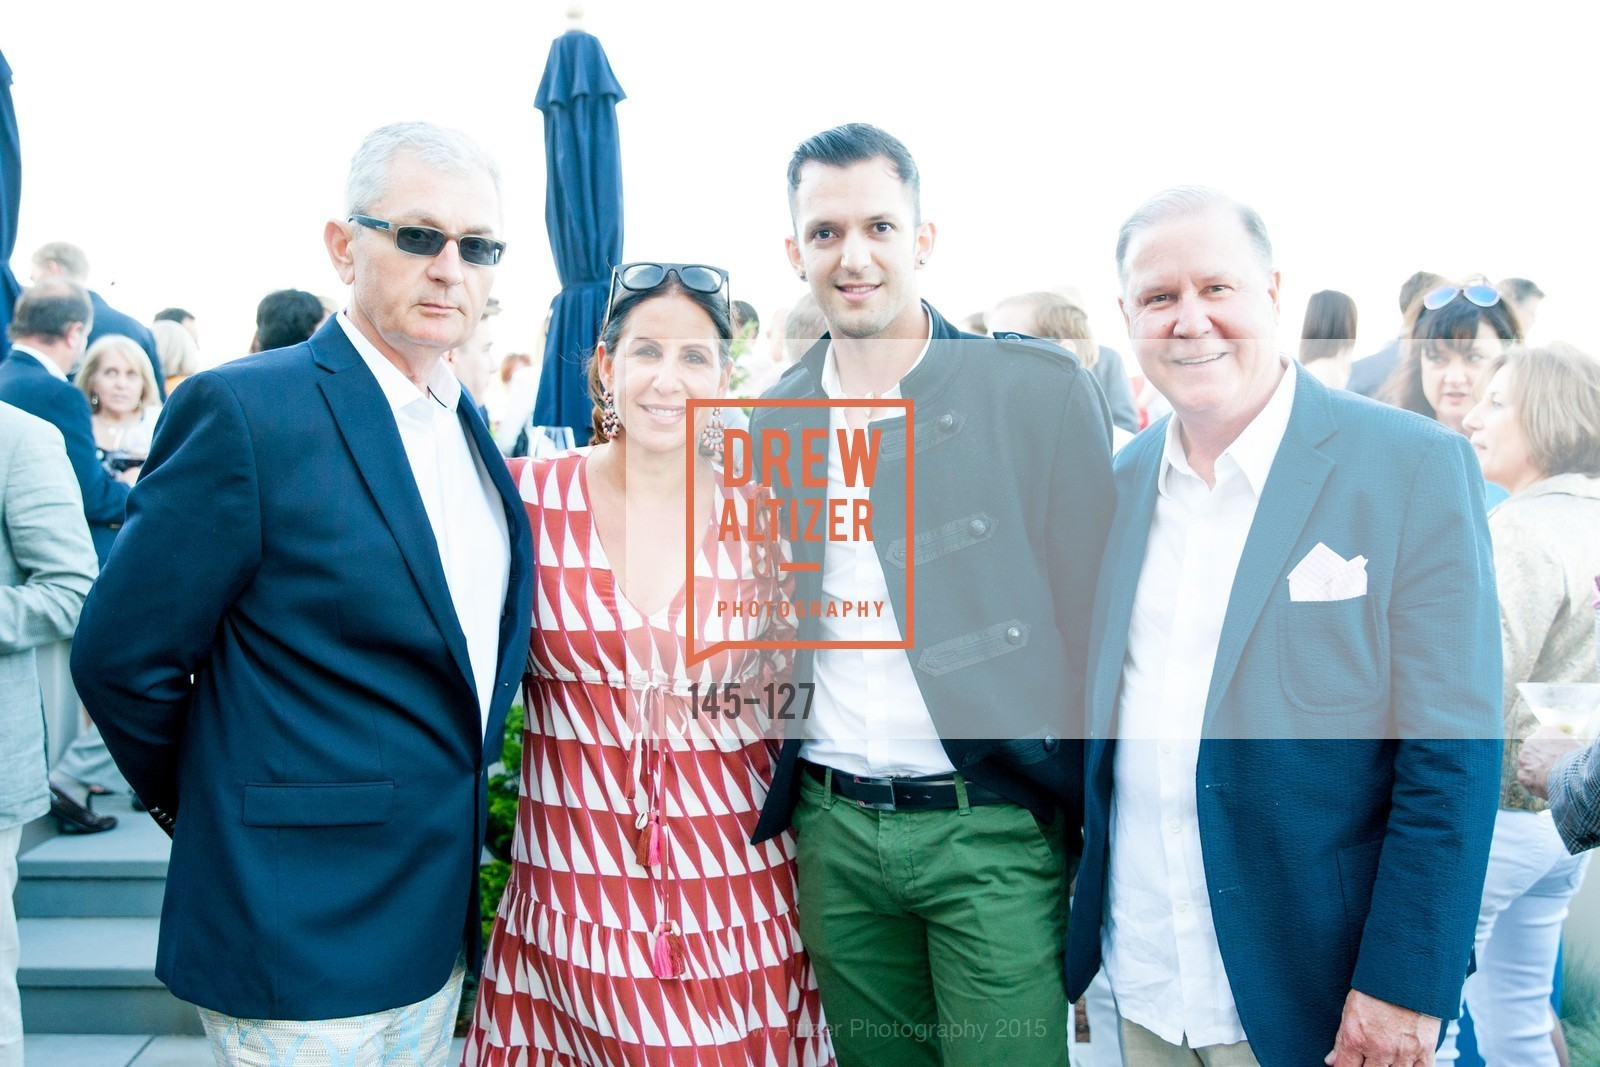 Alain-Martin Piuriet, Lisa Grotts, Efren Espinosa, John Grotts, An Evening in the Vineyard hosted by JACK CALHOUN & TRENT NORRIS, Jack Calhoun & Trent Norris Vineyard. 3393 Dry Creek Road, Healdsburg CA 95448, May 22nd, 2015,Drew Altizer, Drew Altizer Photography, full-service agency, private events, San Francisco photographer, photographer california